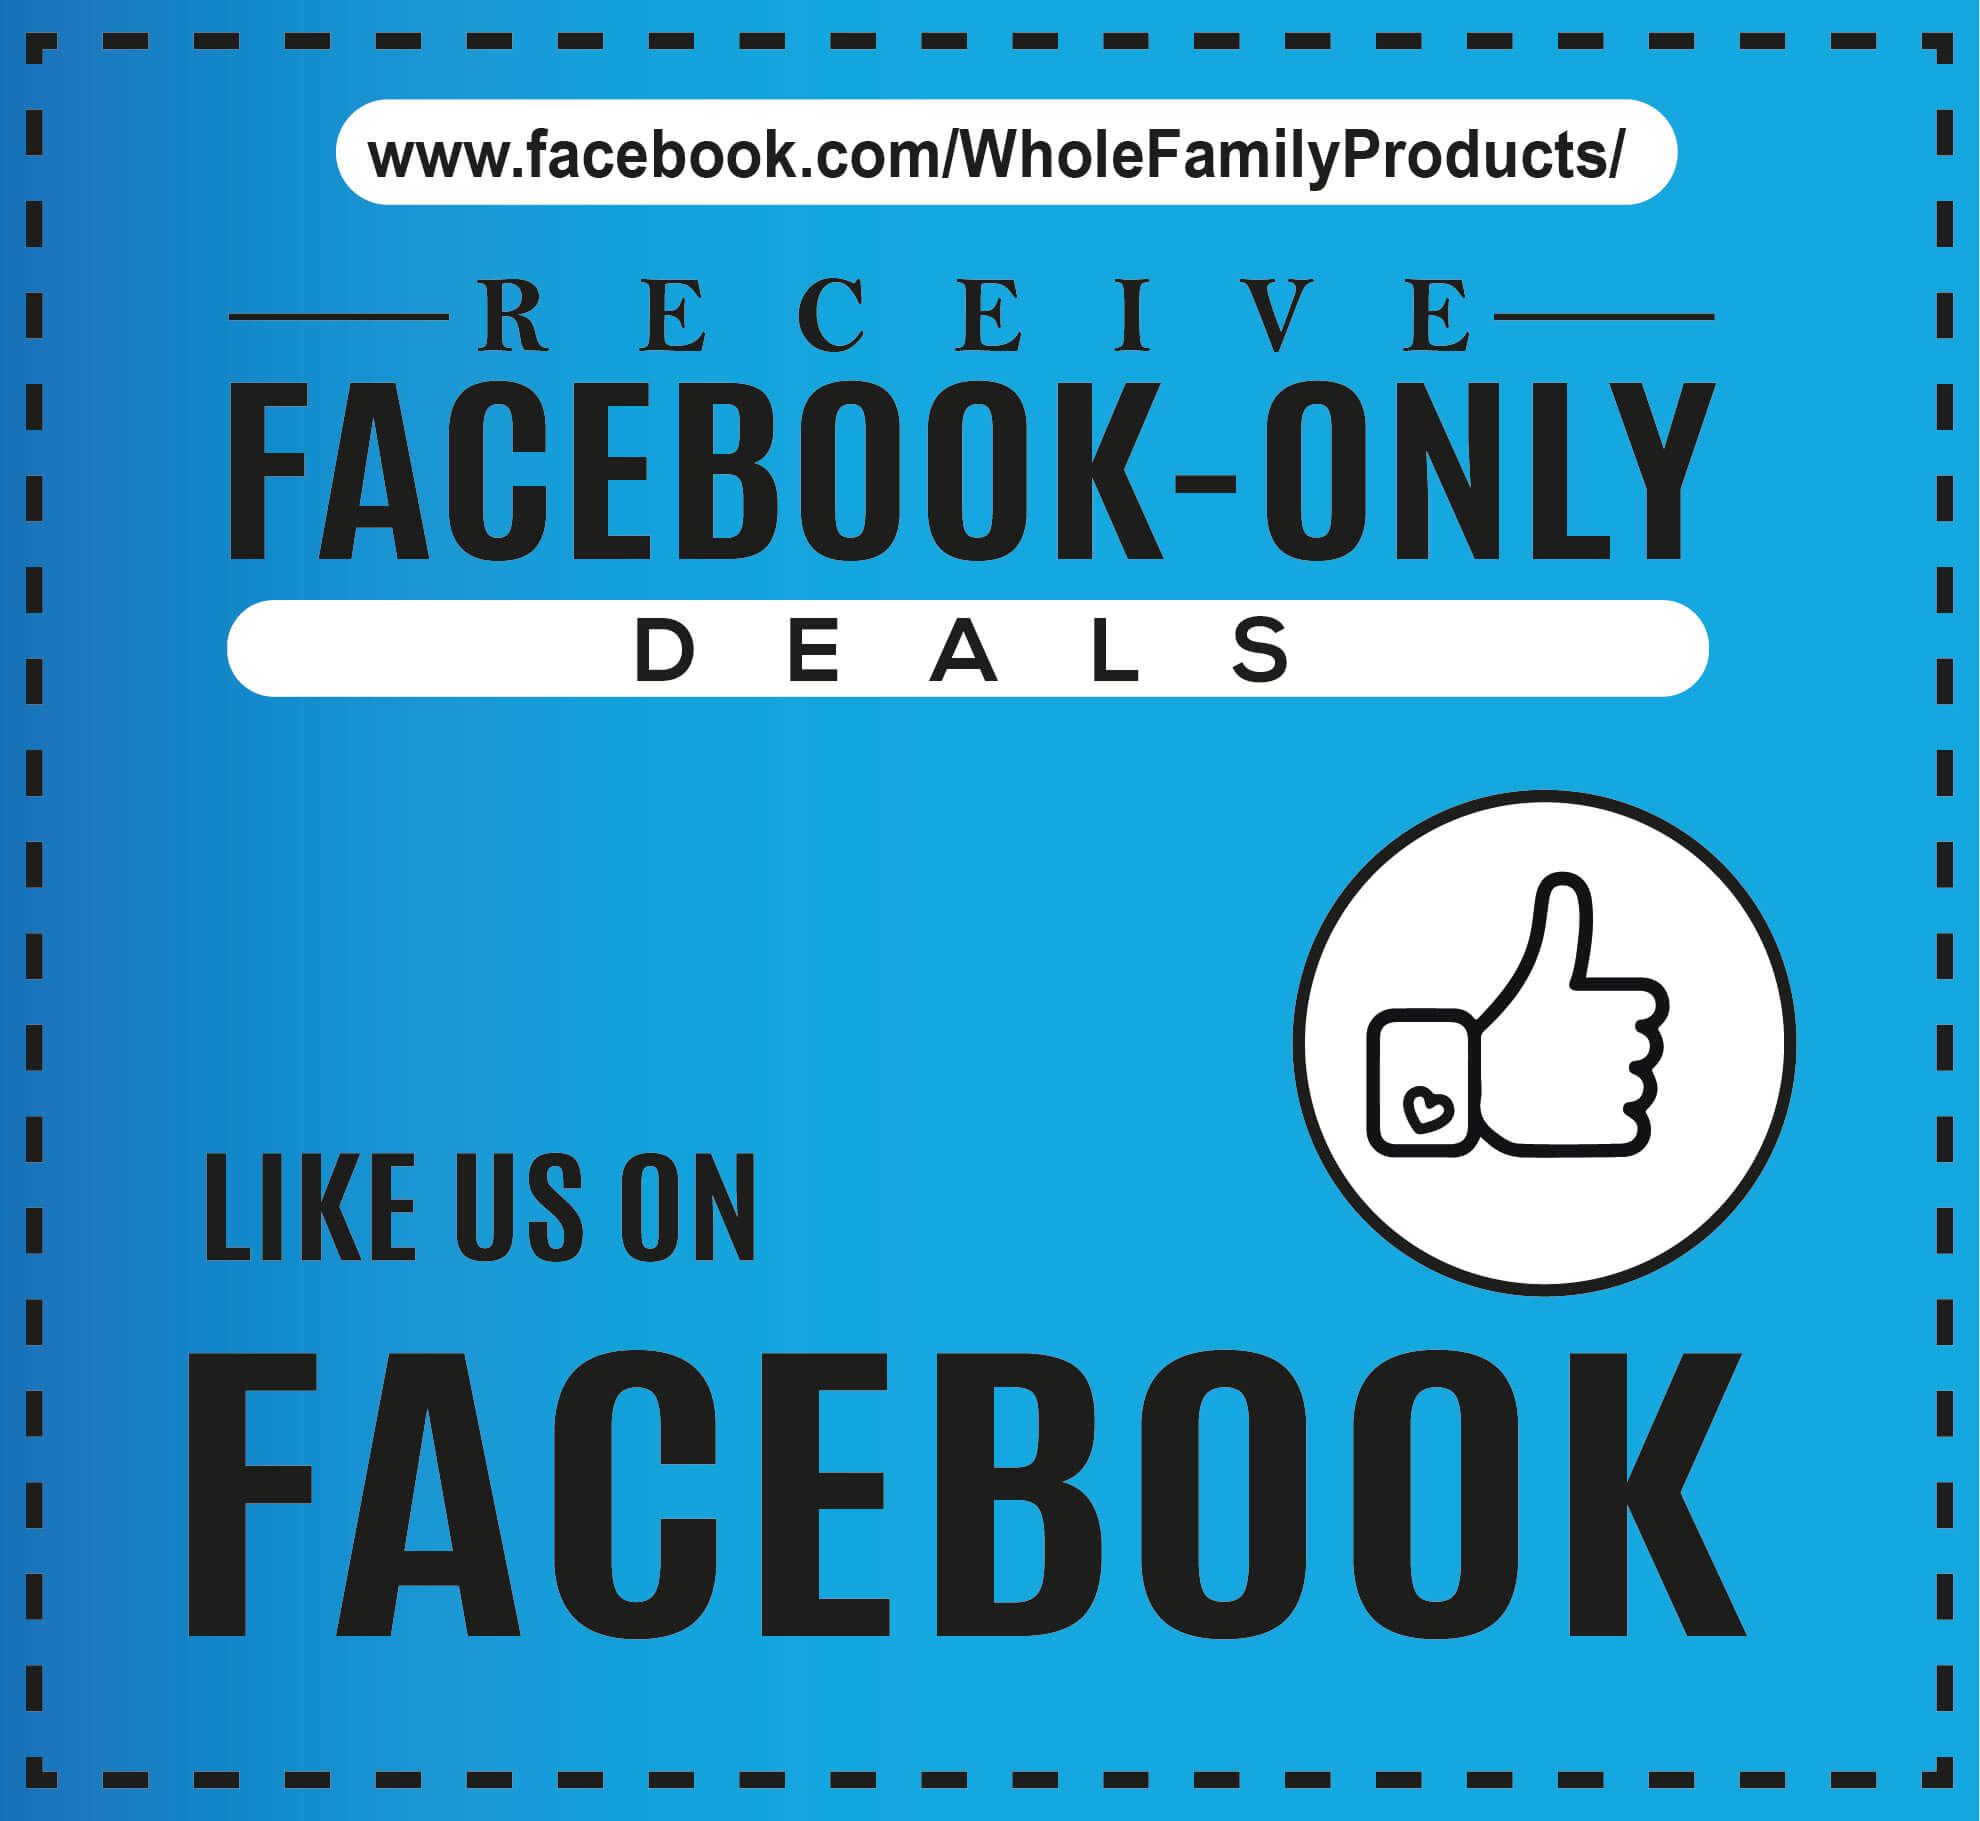 Whole Family Products Facebook Banner